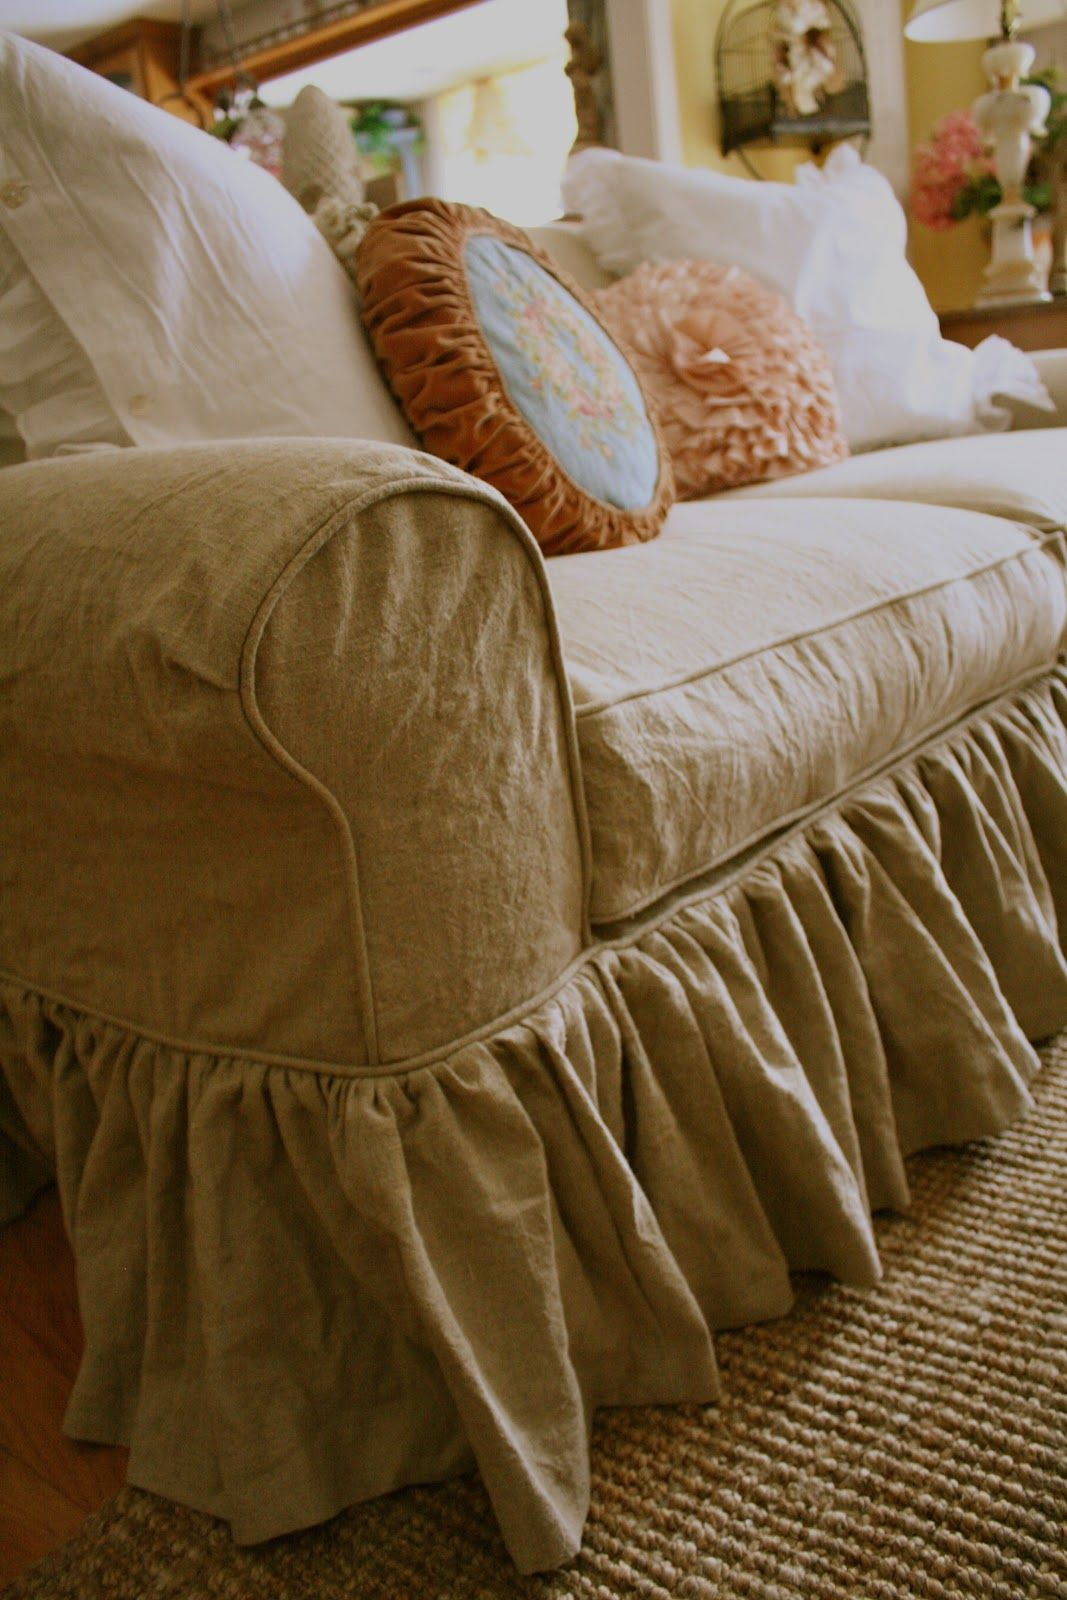 Custom Slipcovers By Shelley. I Dream Of Furniture Like This!